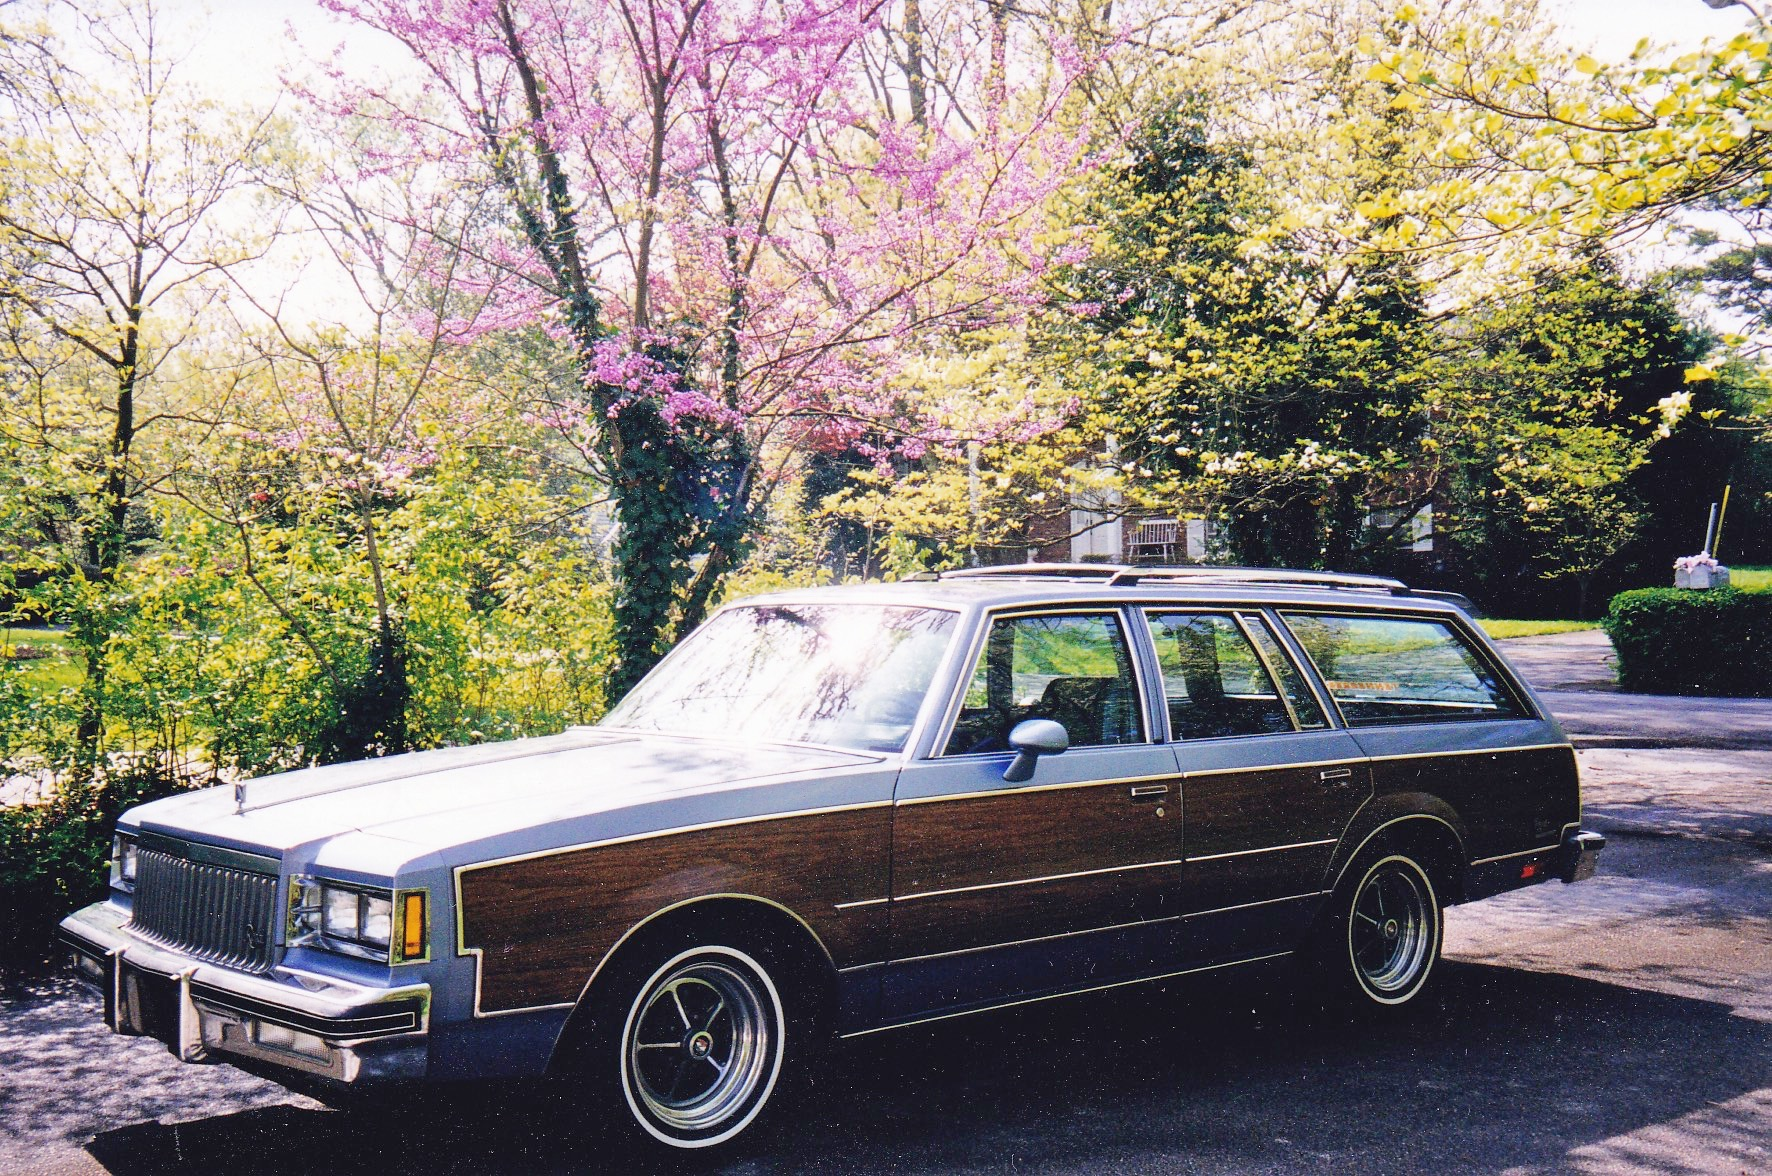 1983 Buick Regal Wagon Knoxville